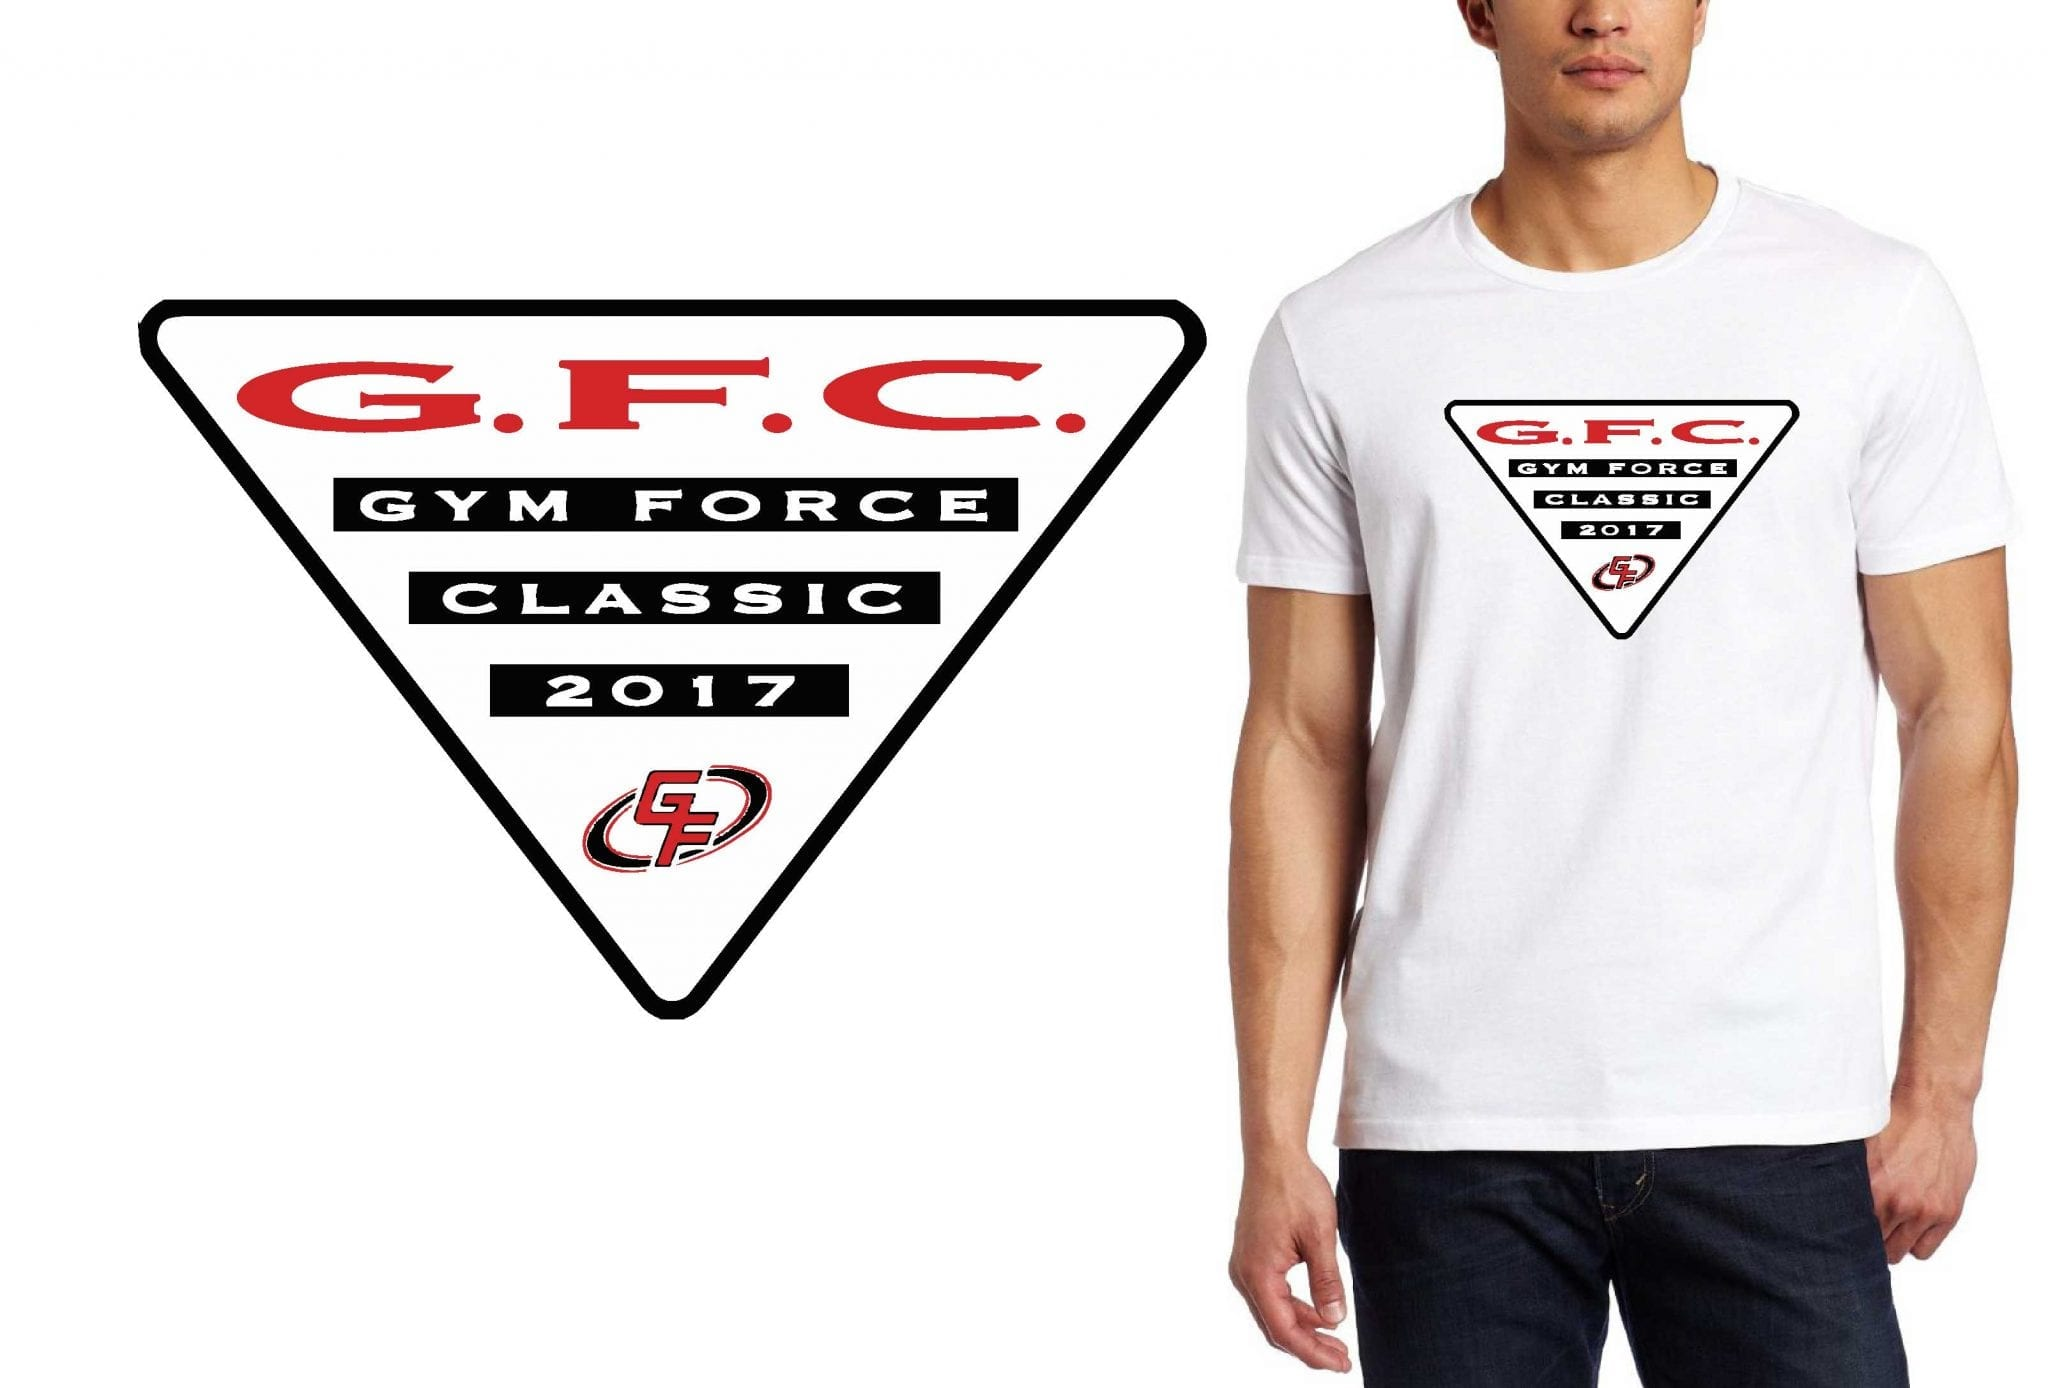 GYMNASTICS T SHIRT LOGO DESIGN Gym-Force-Classic BY UrArtStudio